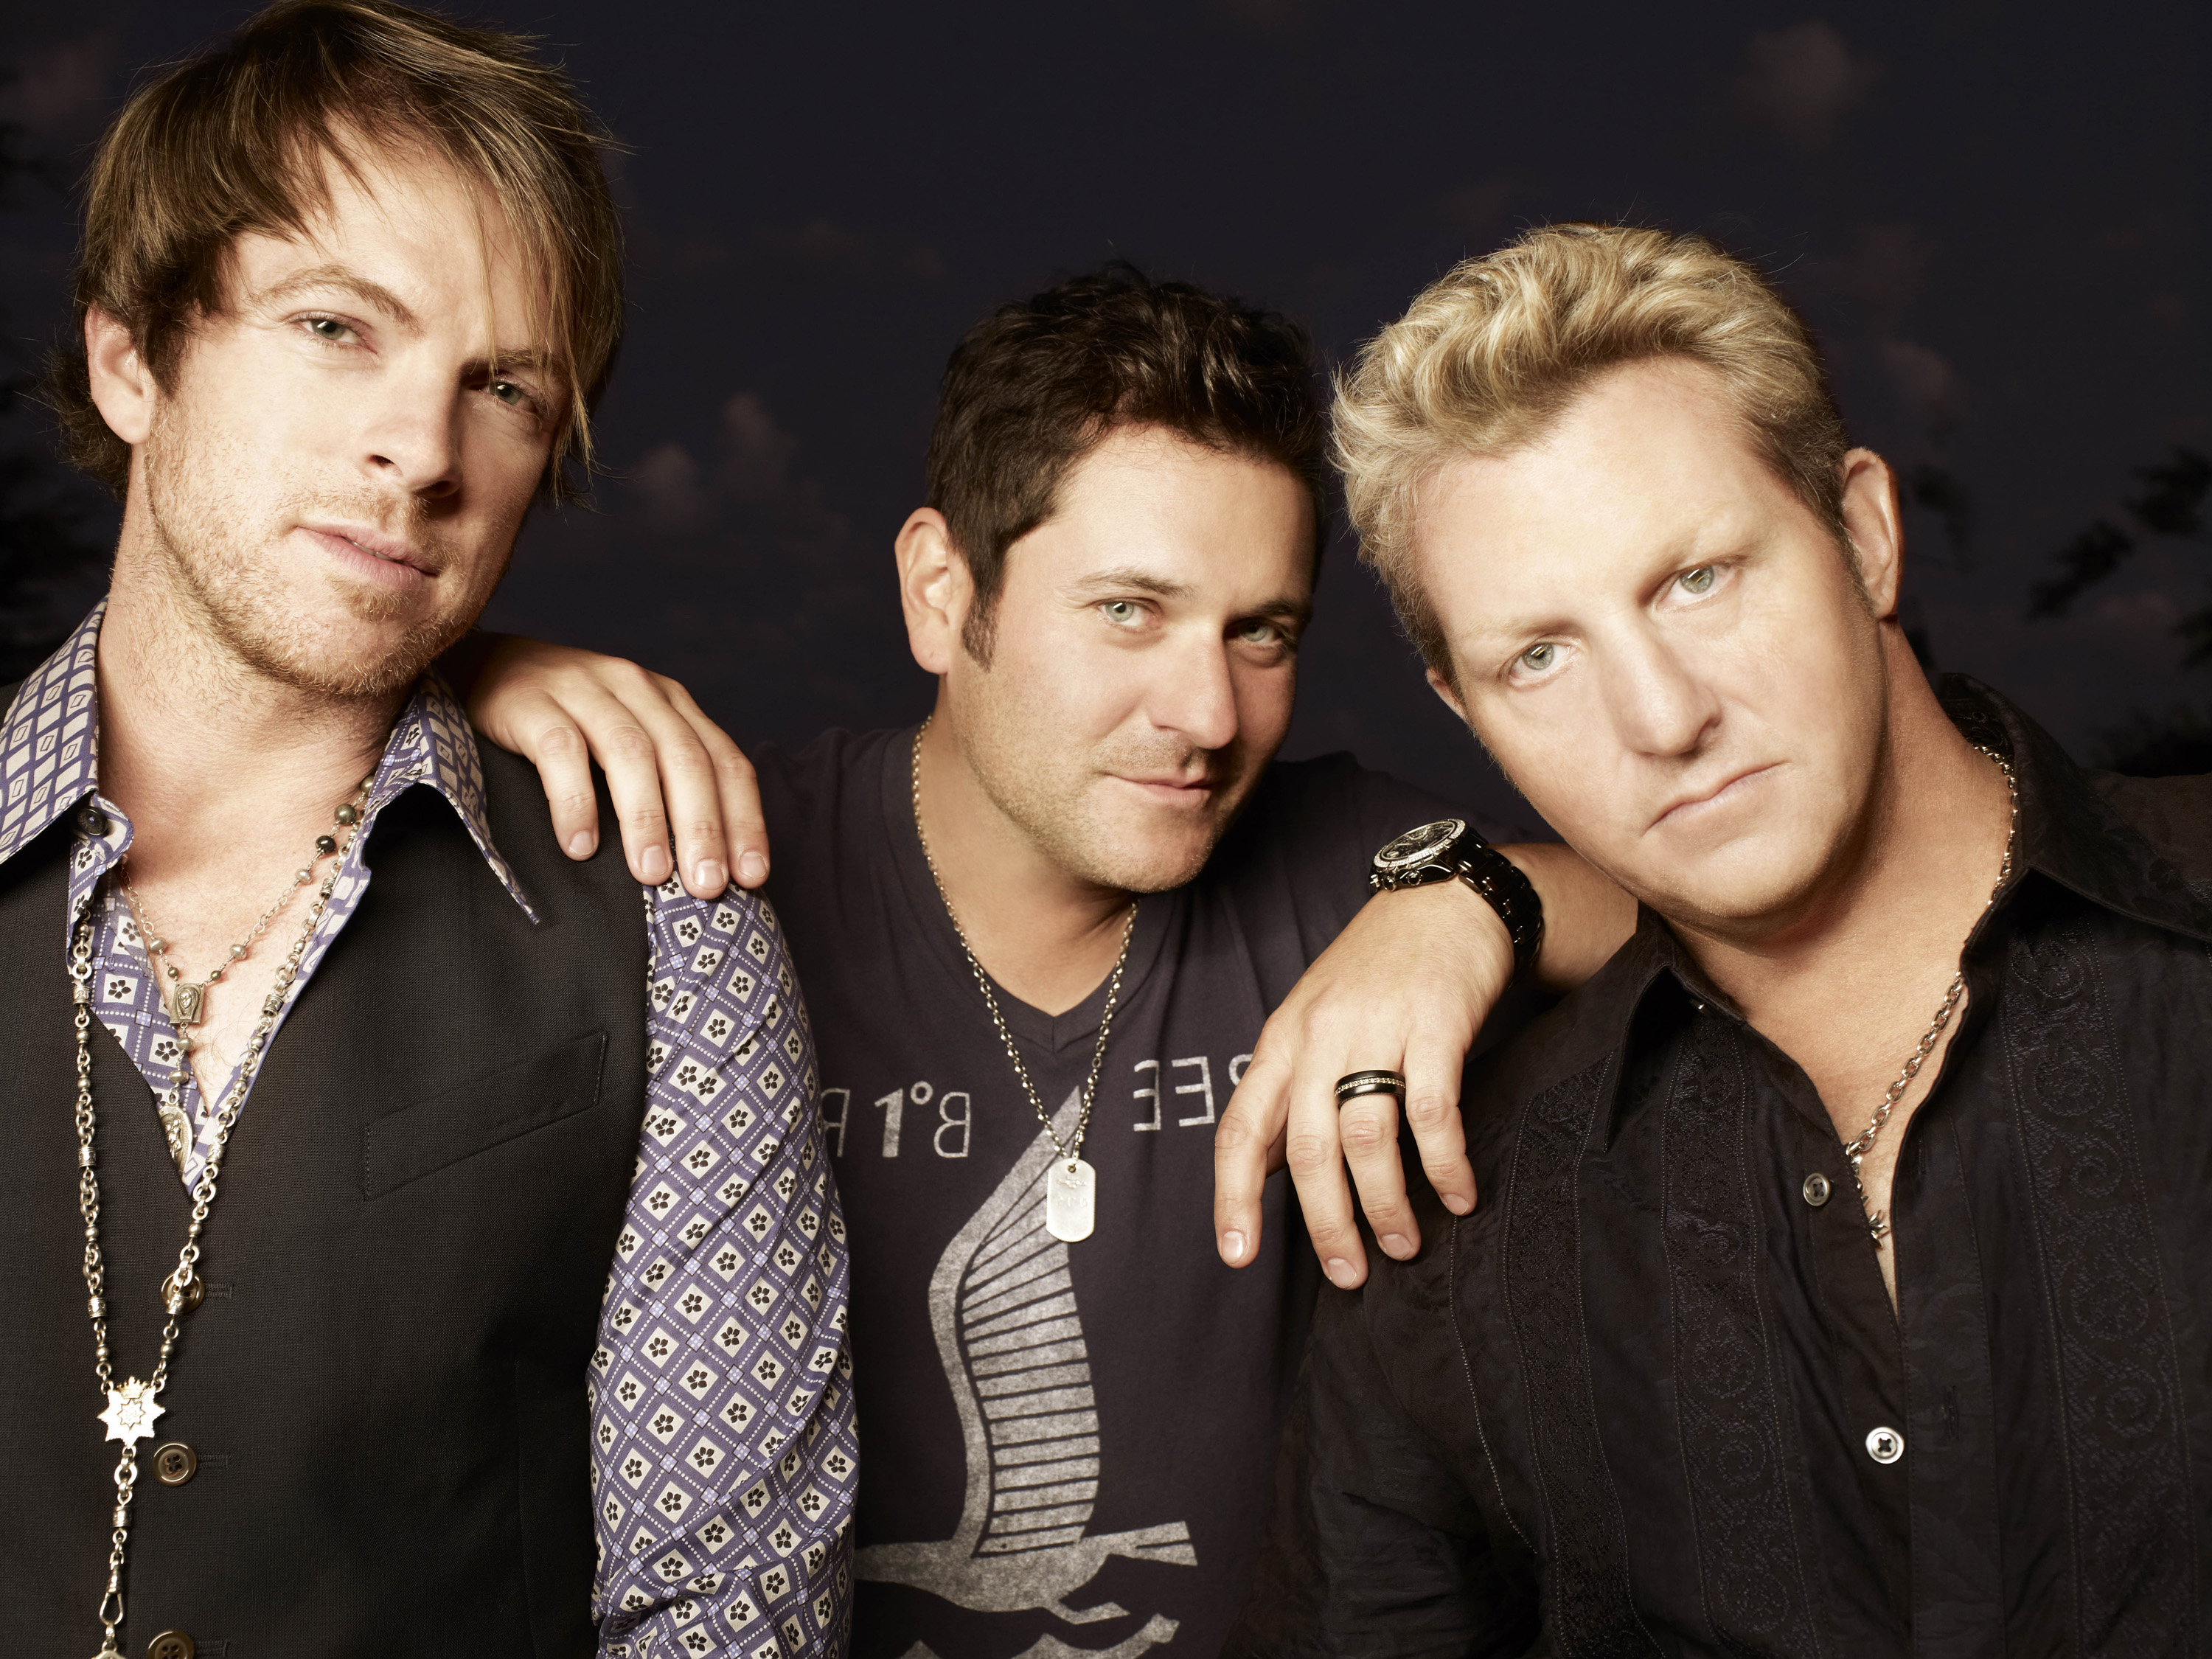 Musical Break: Rascal Flatts – Changed